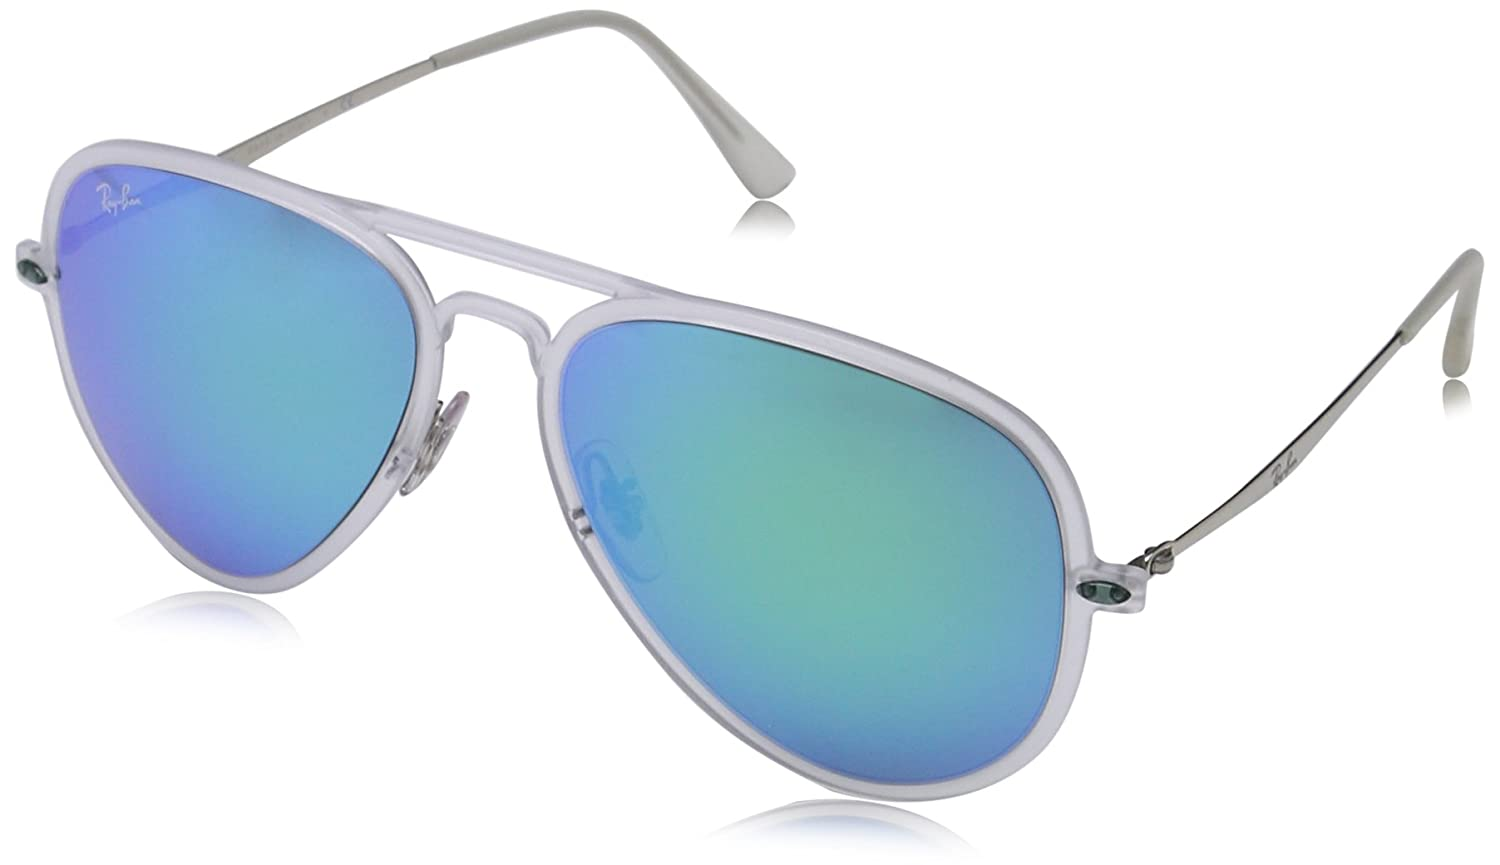 Ray-Ban Unisex Sonnenbrille AVIATOR LIGHT RAY II, Gr. Large ...